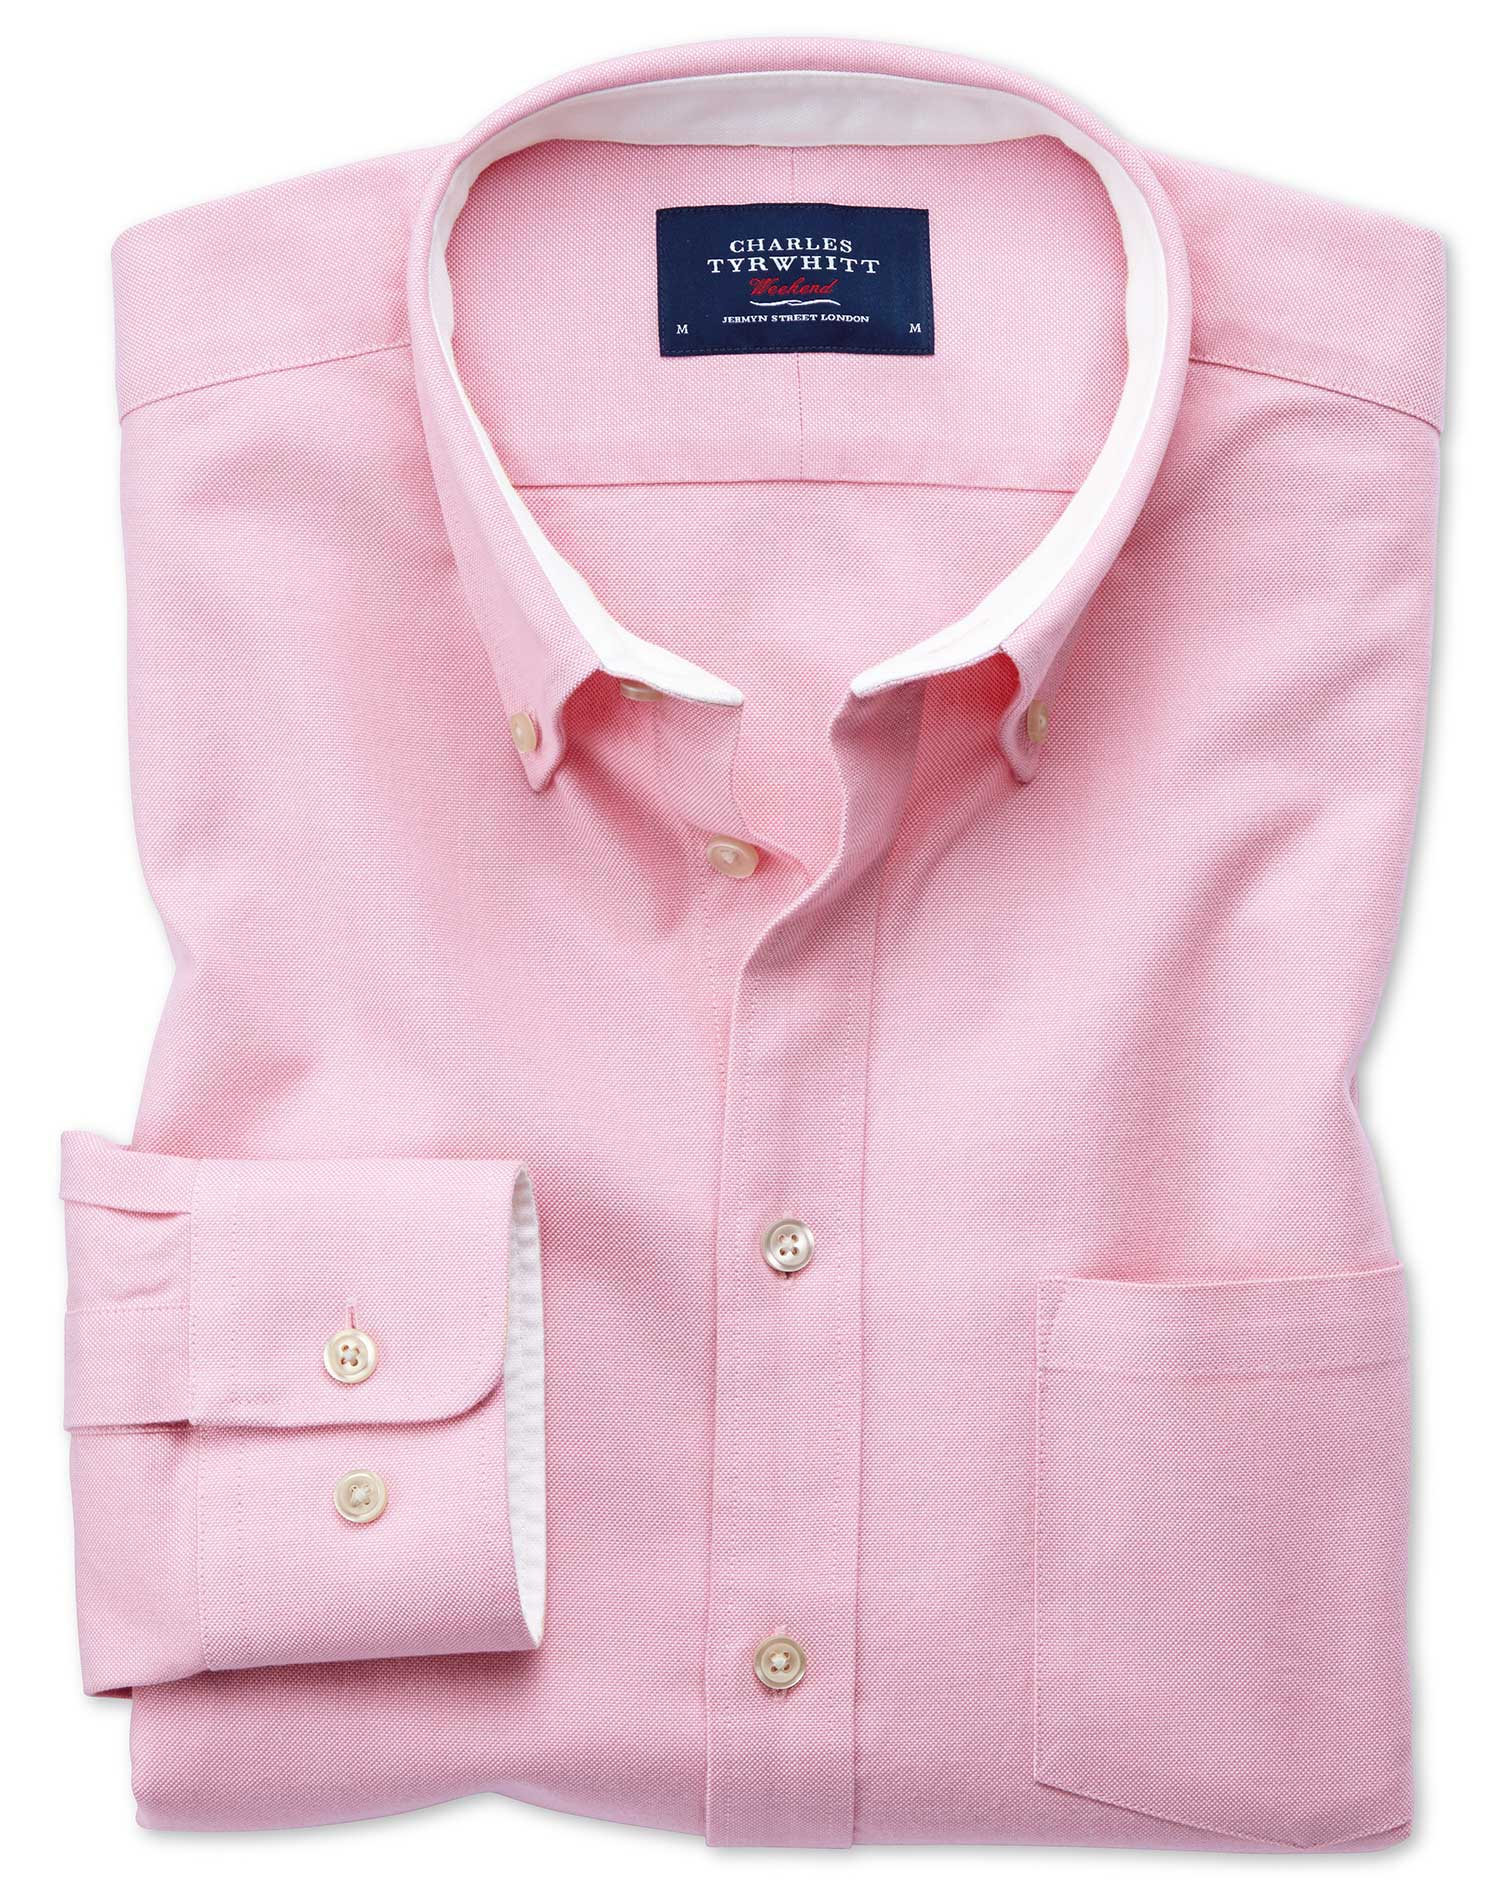 Extra Slim Fit Button-Down Washed Oxford Plain Light Pink Cotton Shirt Single Cuff Size Small by Cha